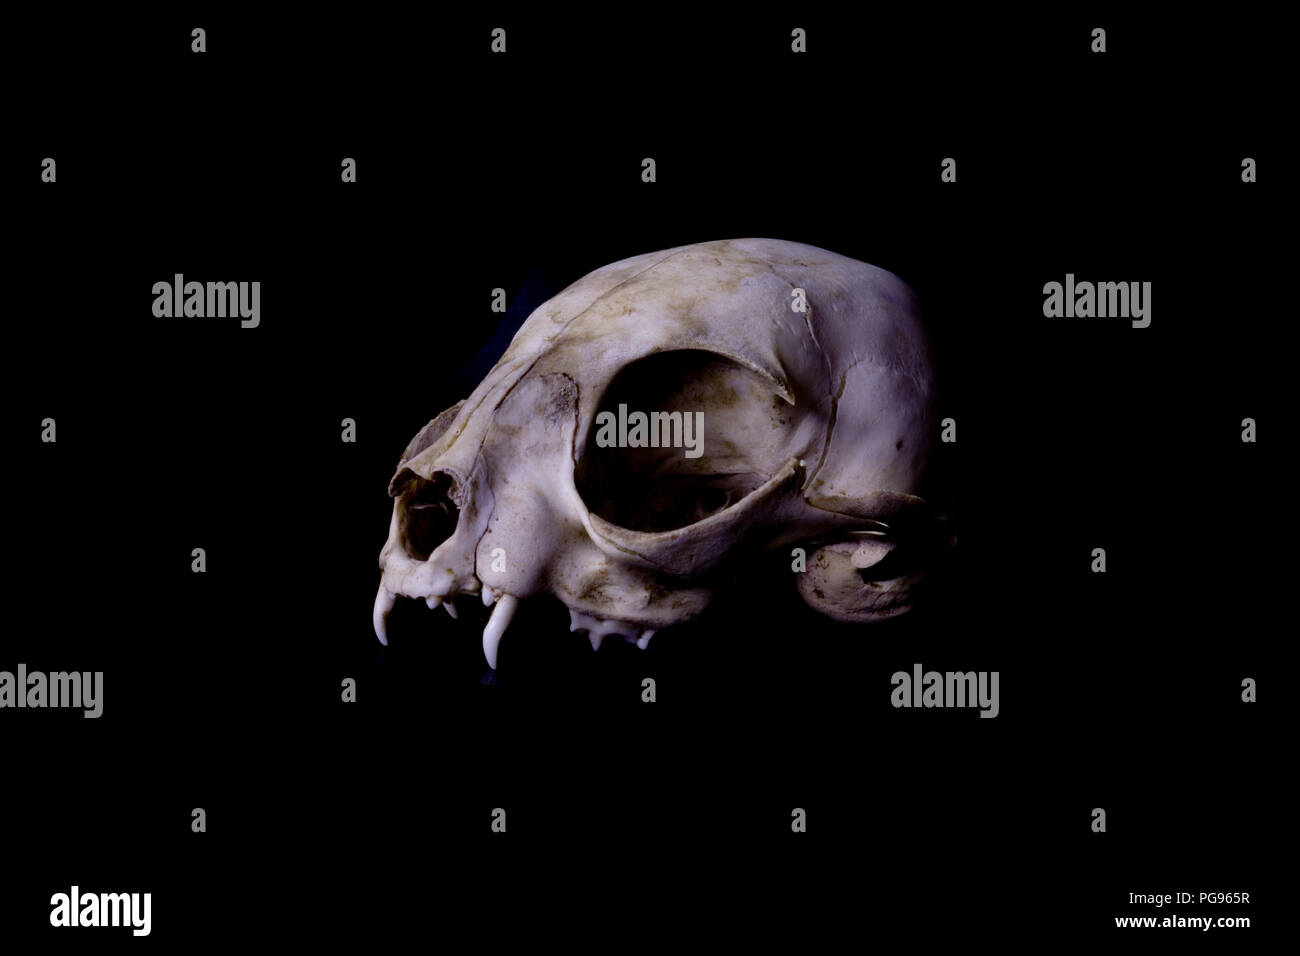 Side view of a cat skull on black background. - Stock Image